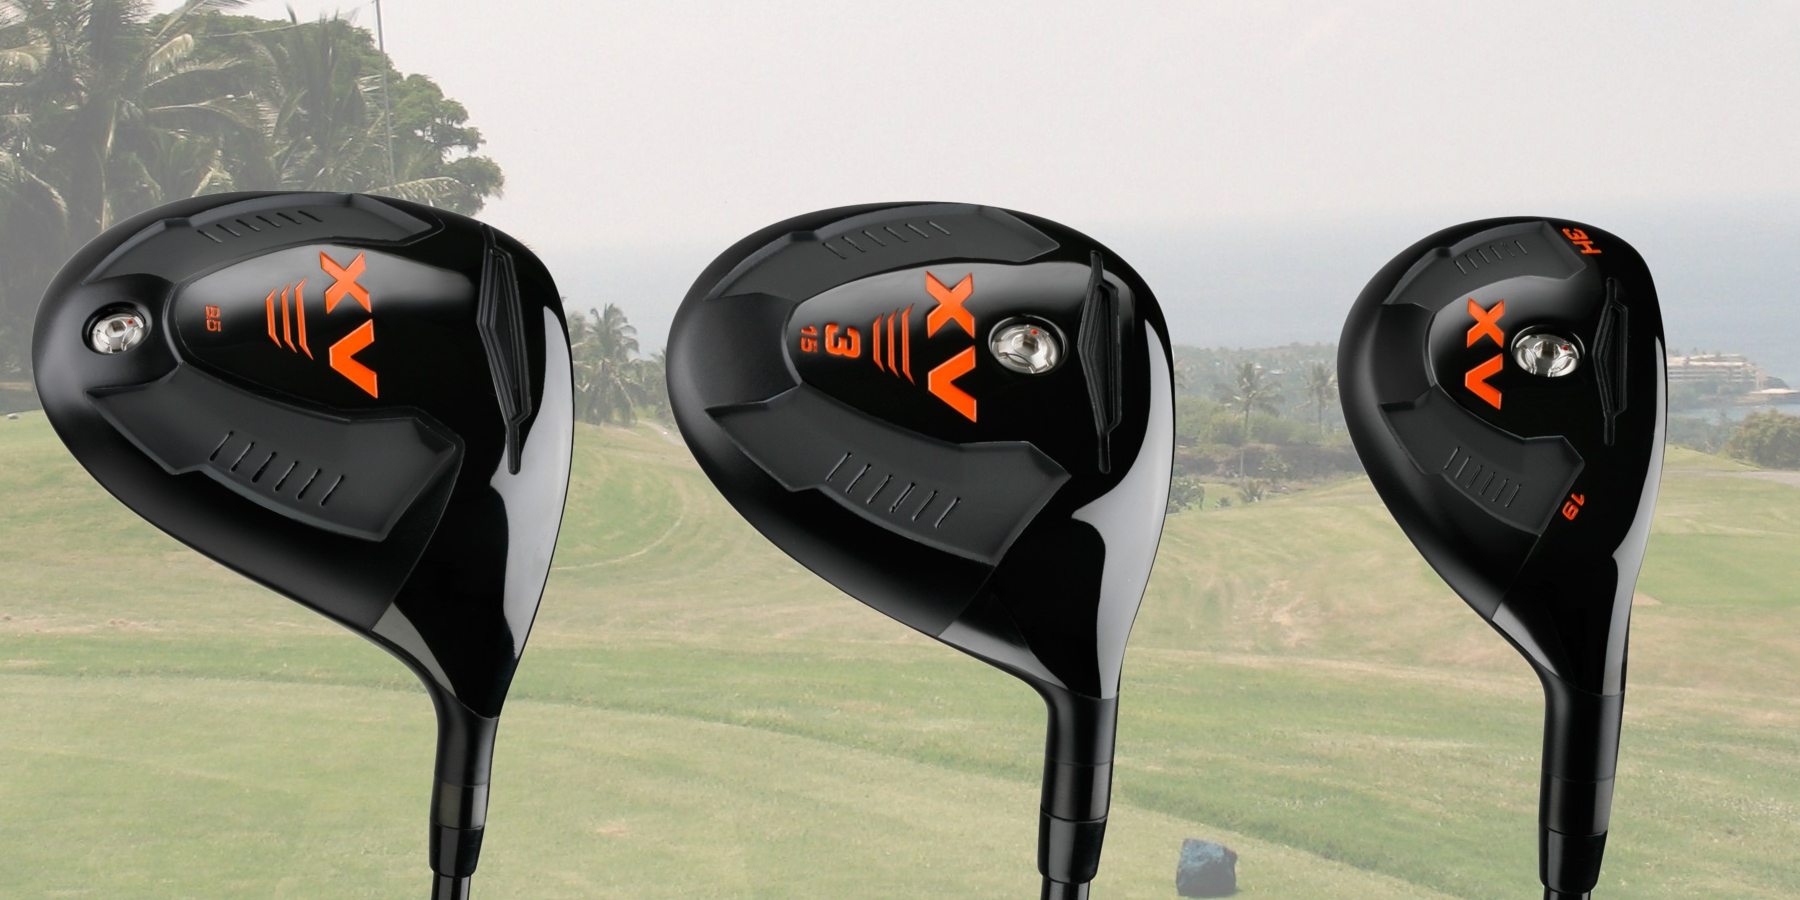 XV Driver, Fairway Wood and Hybrid